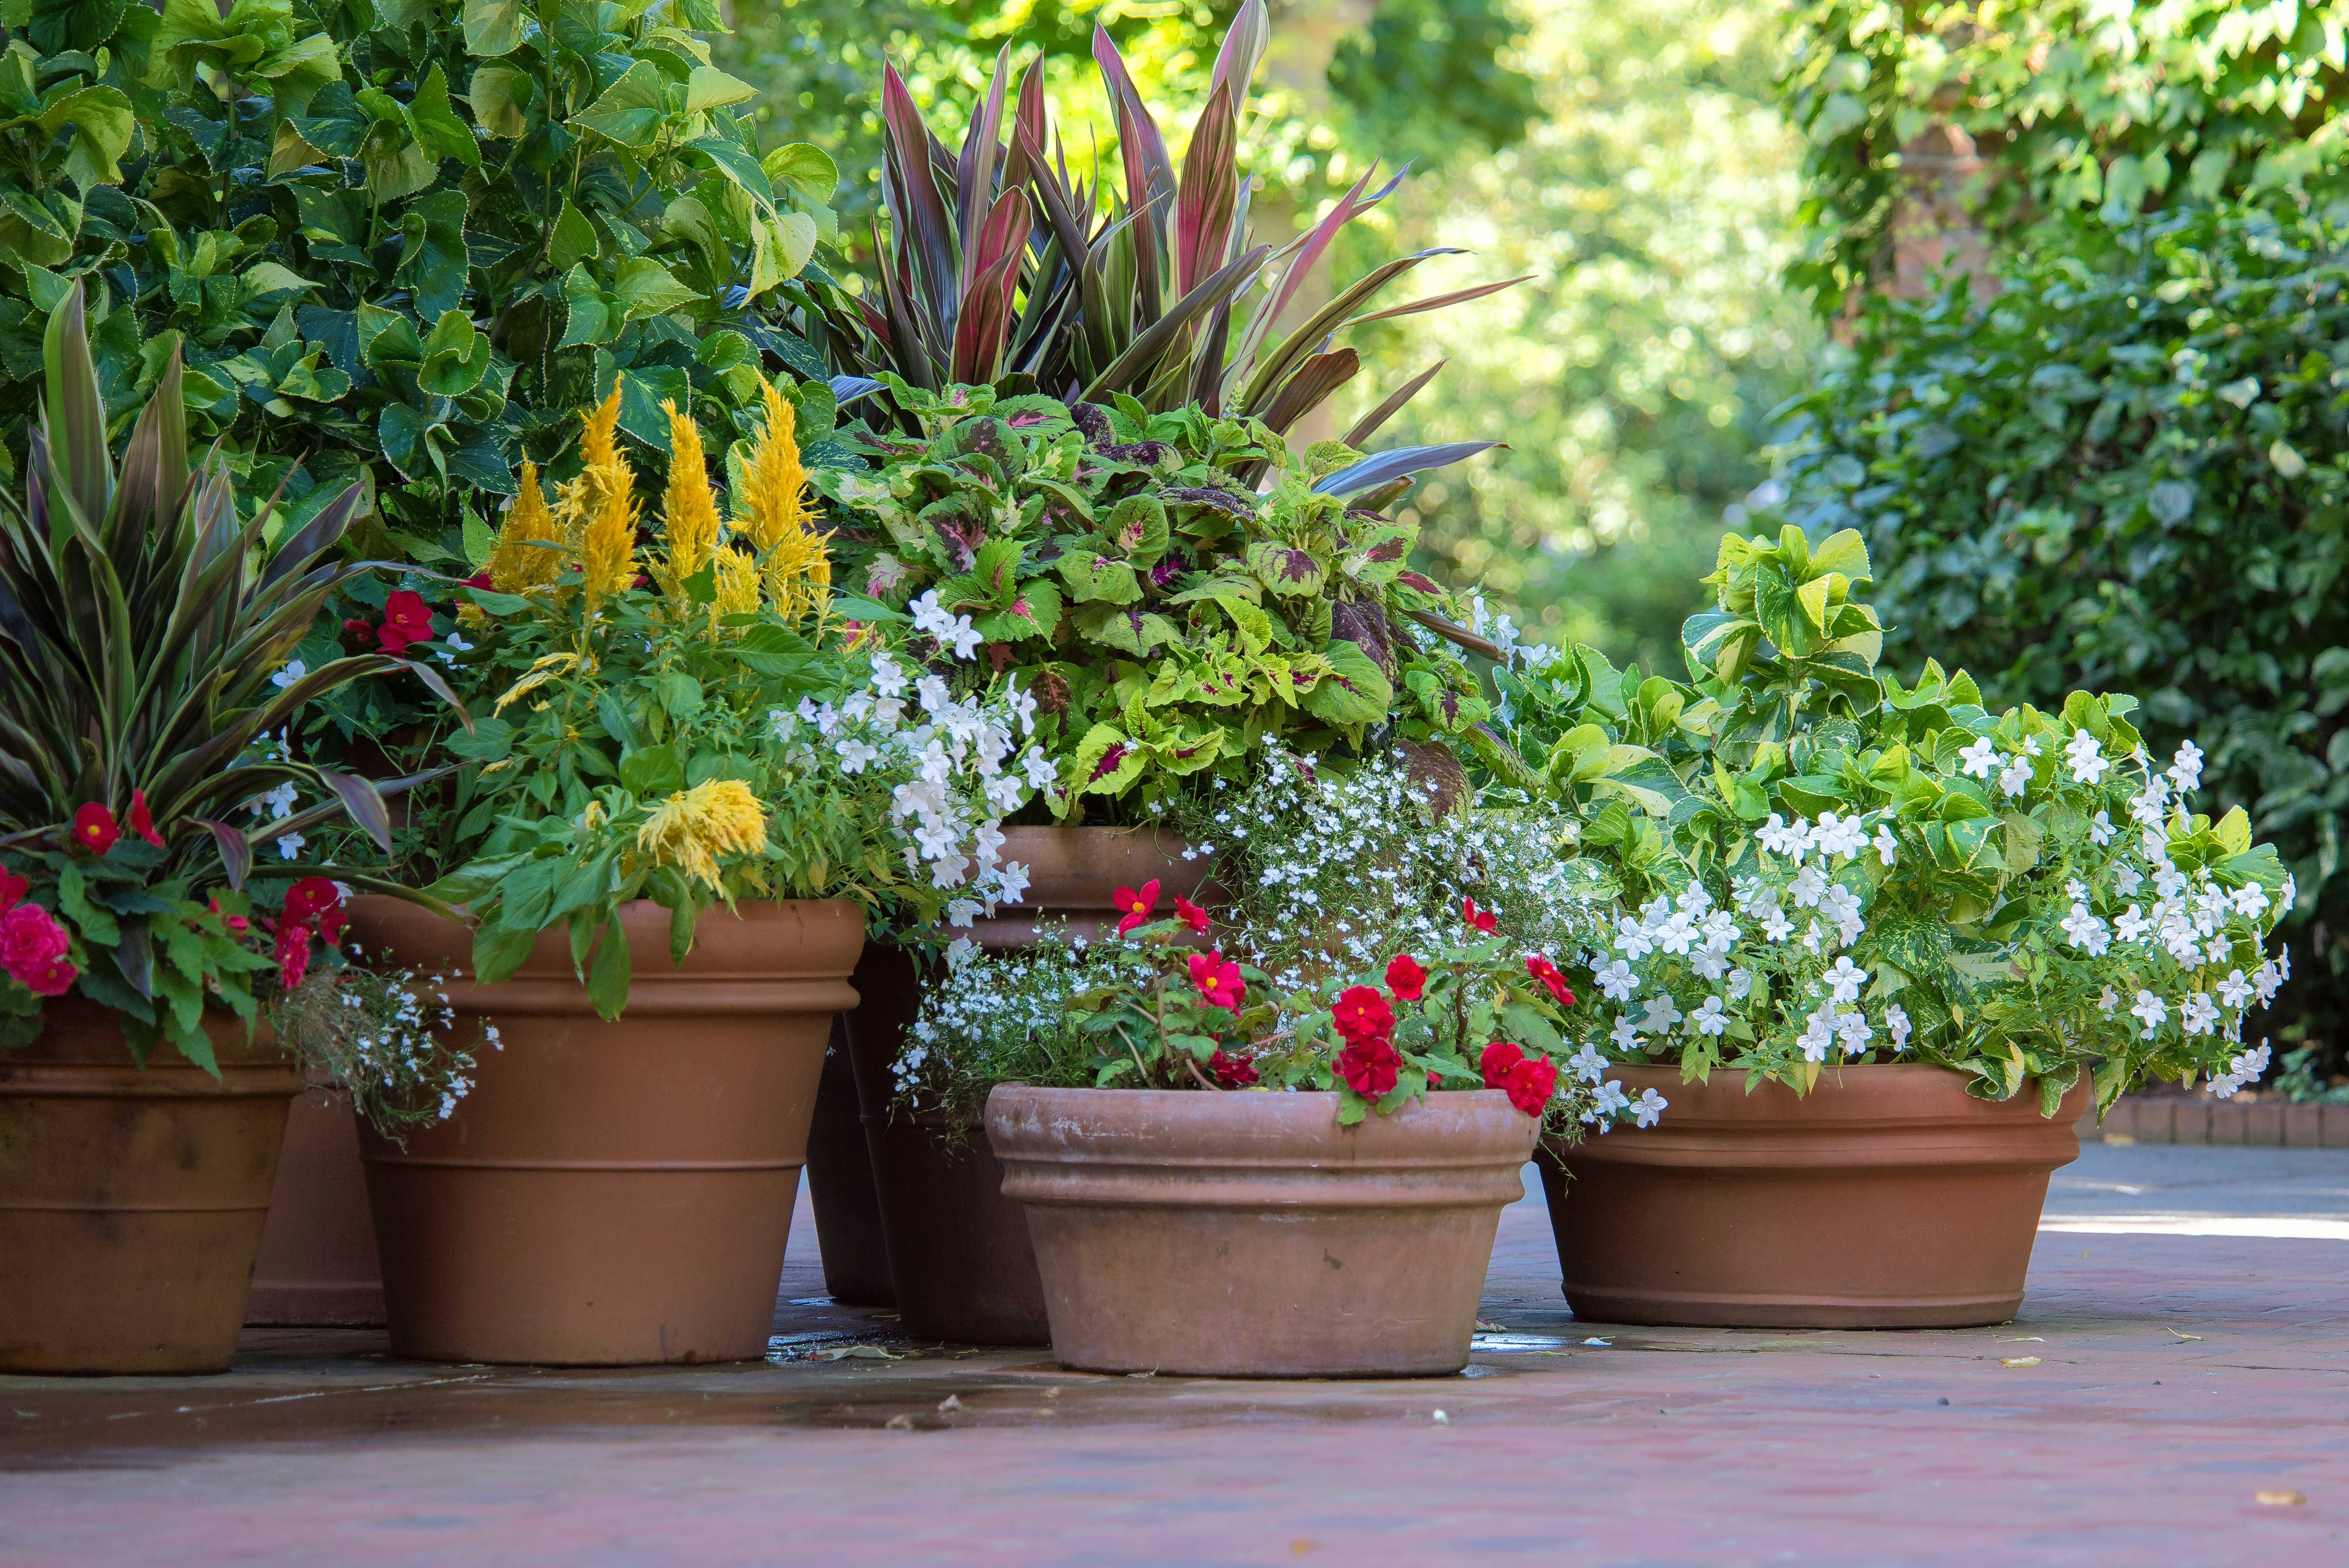 Large houseplants in plastic pots should be slipped into larger, heavier pots to prevent them from falling over in the wind.